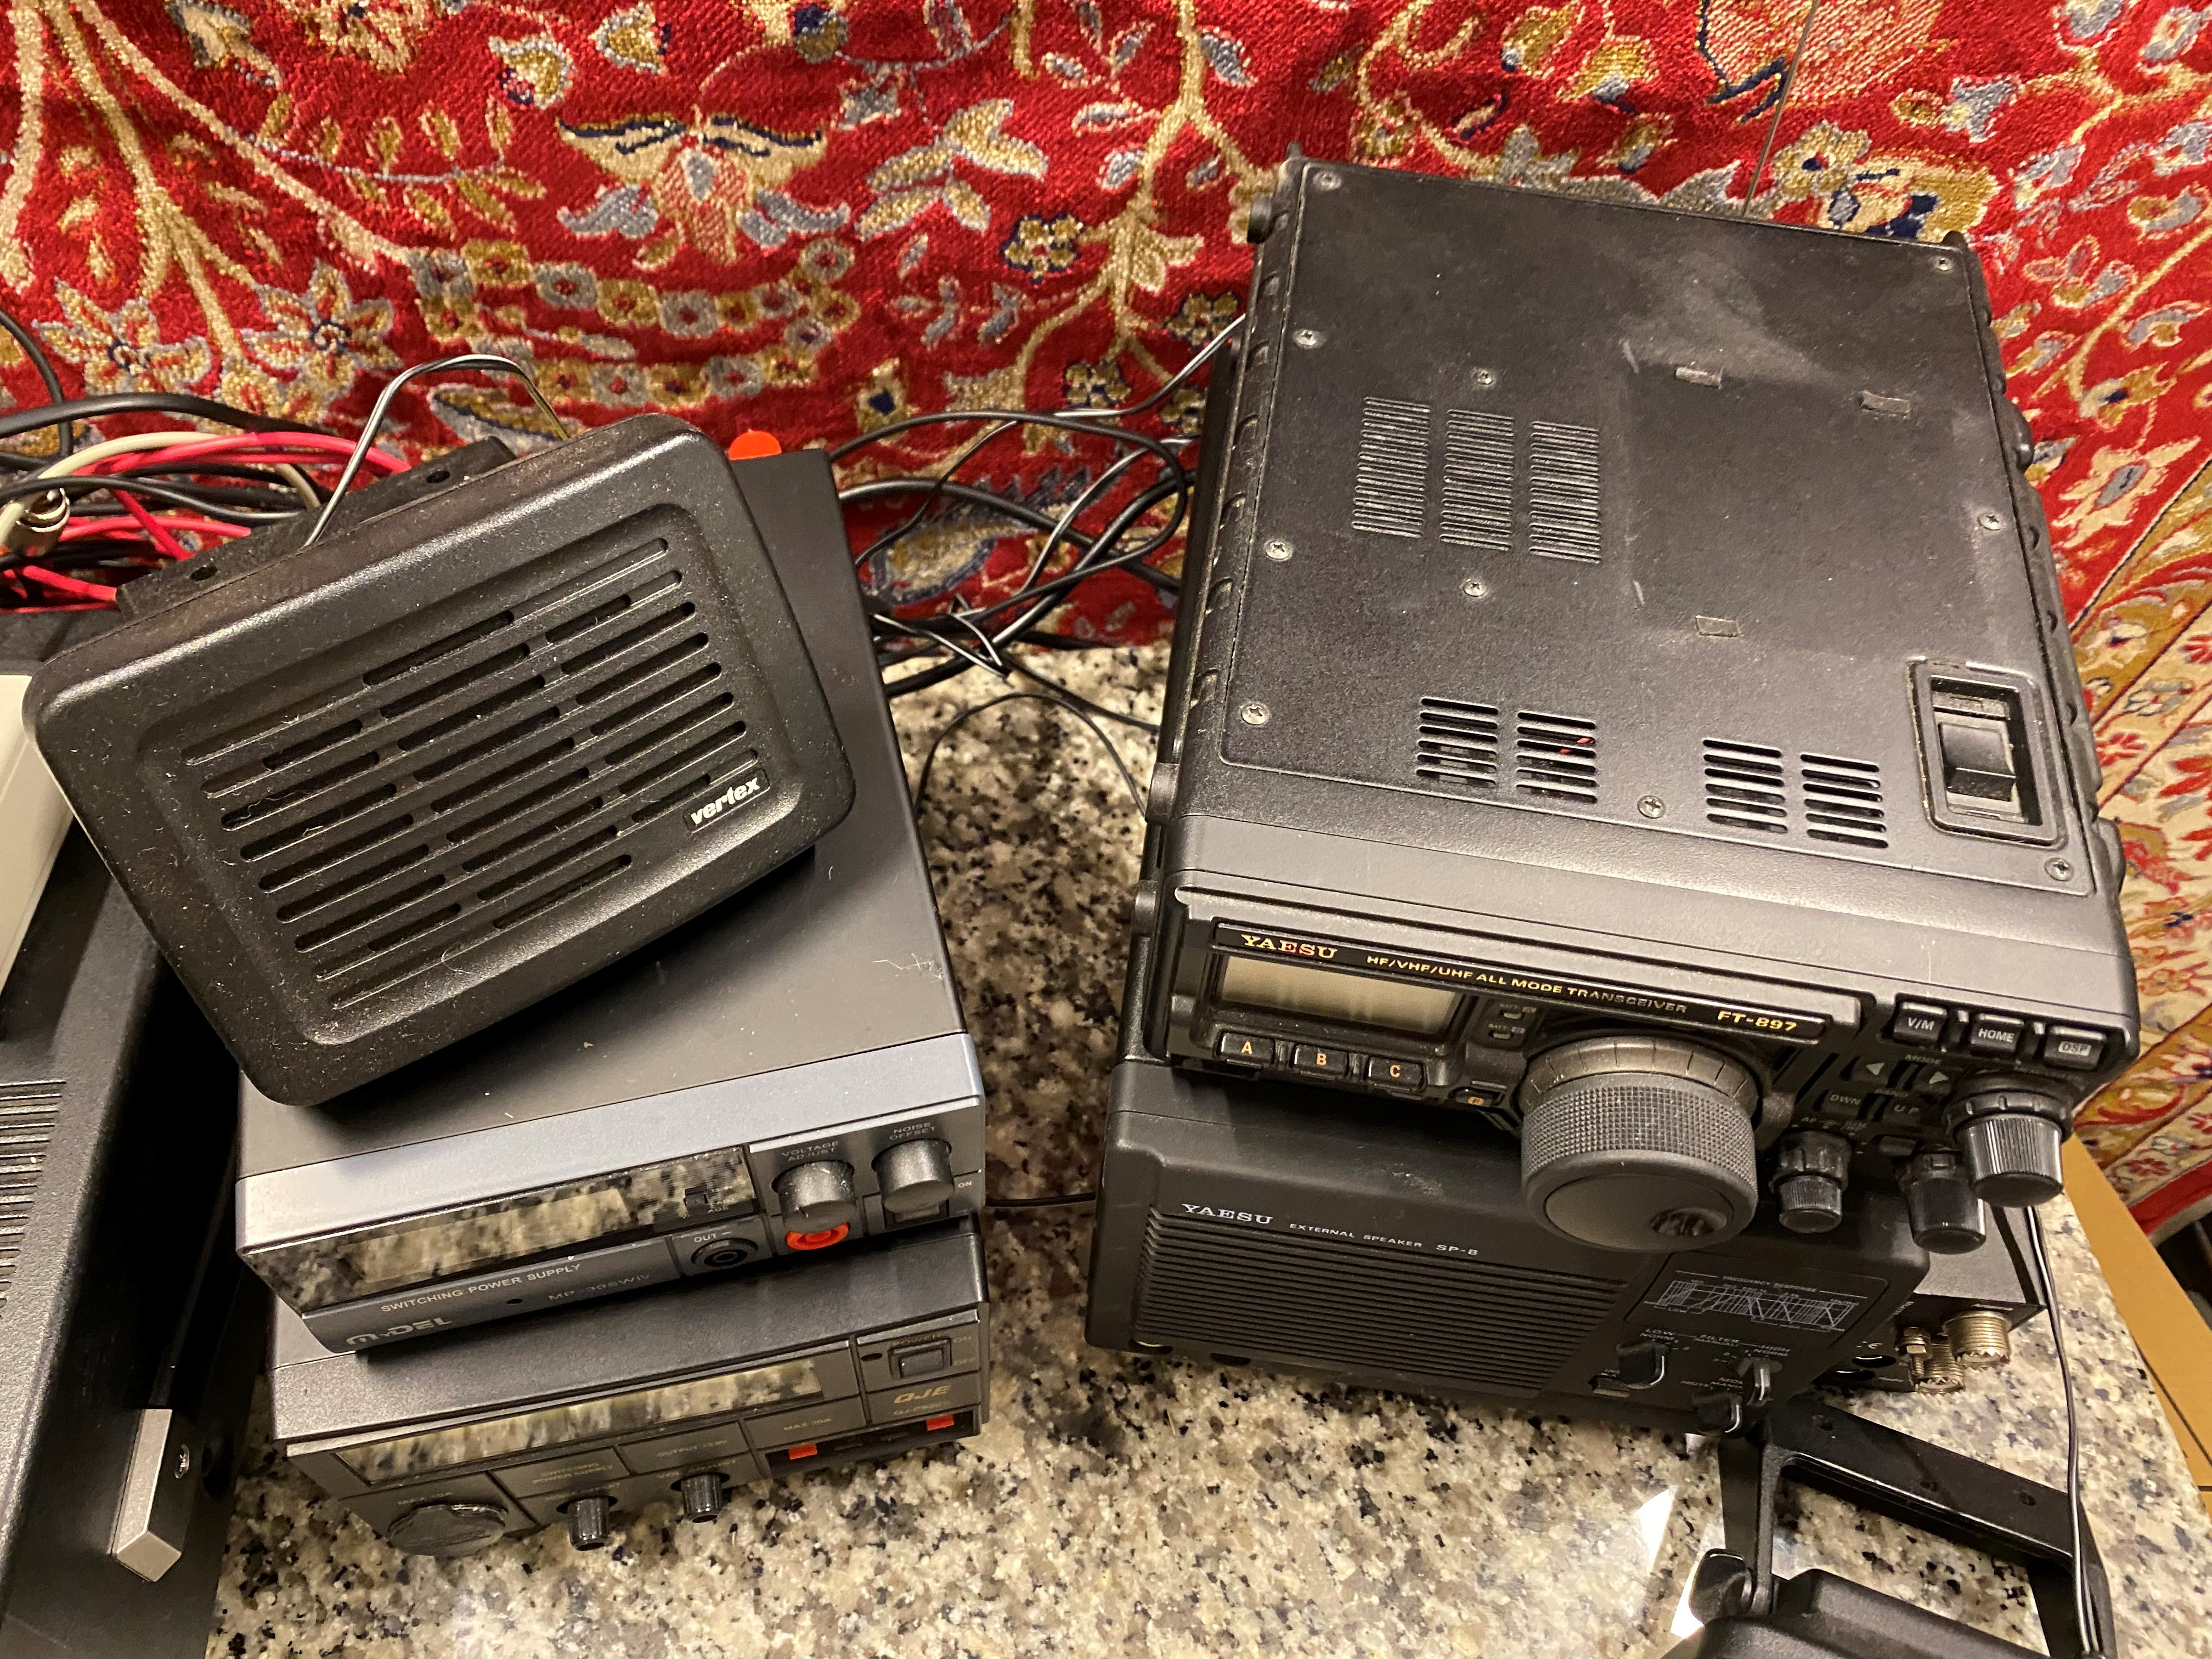 A collection of amateur 'ham' radio equipment, comprising: a Yaesu FTDX 3000 transceiver, an ATU 897 - Image 7 of 13